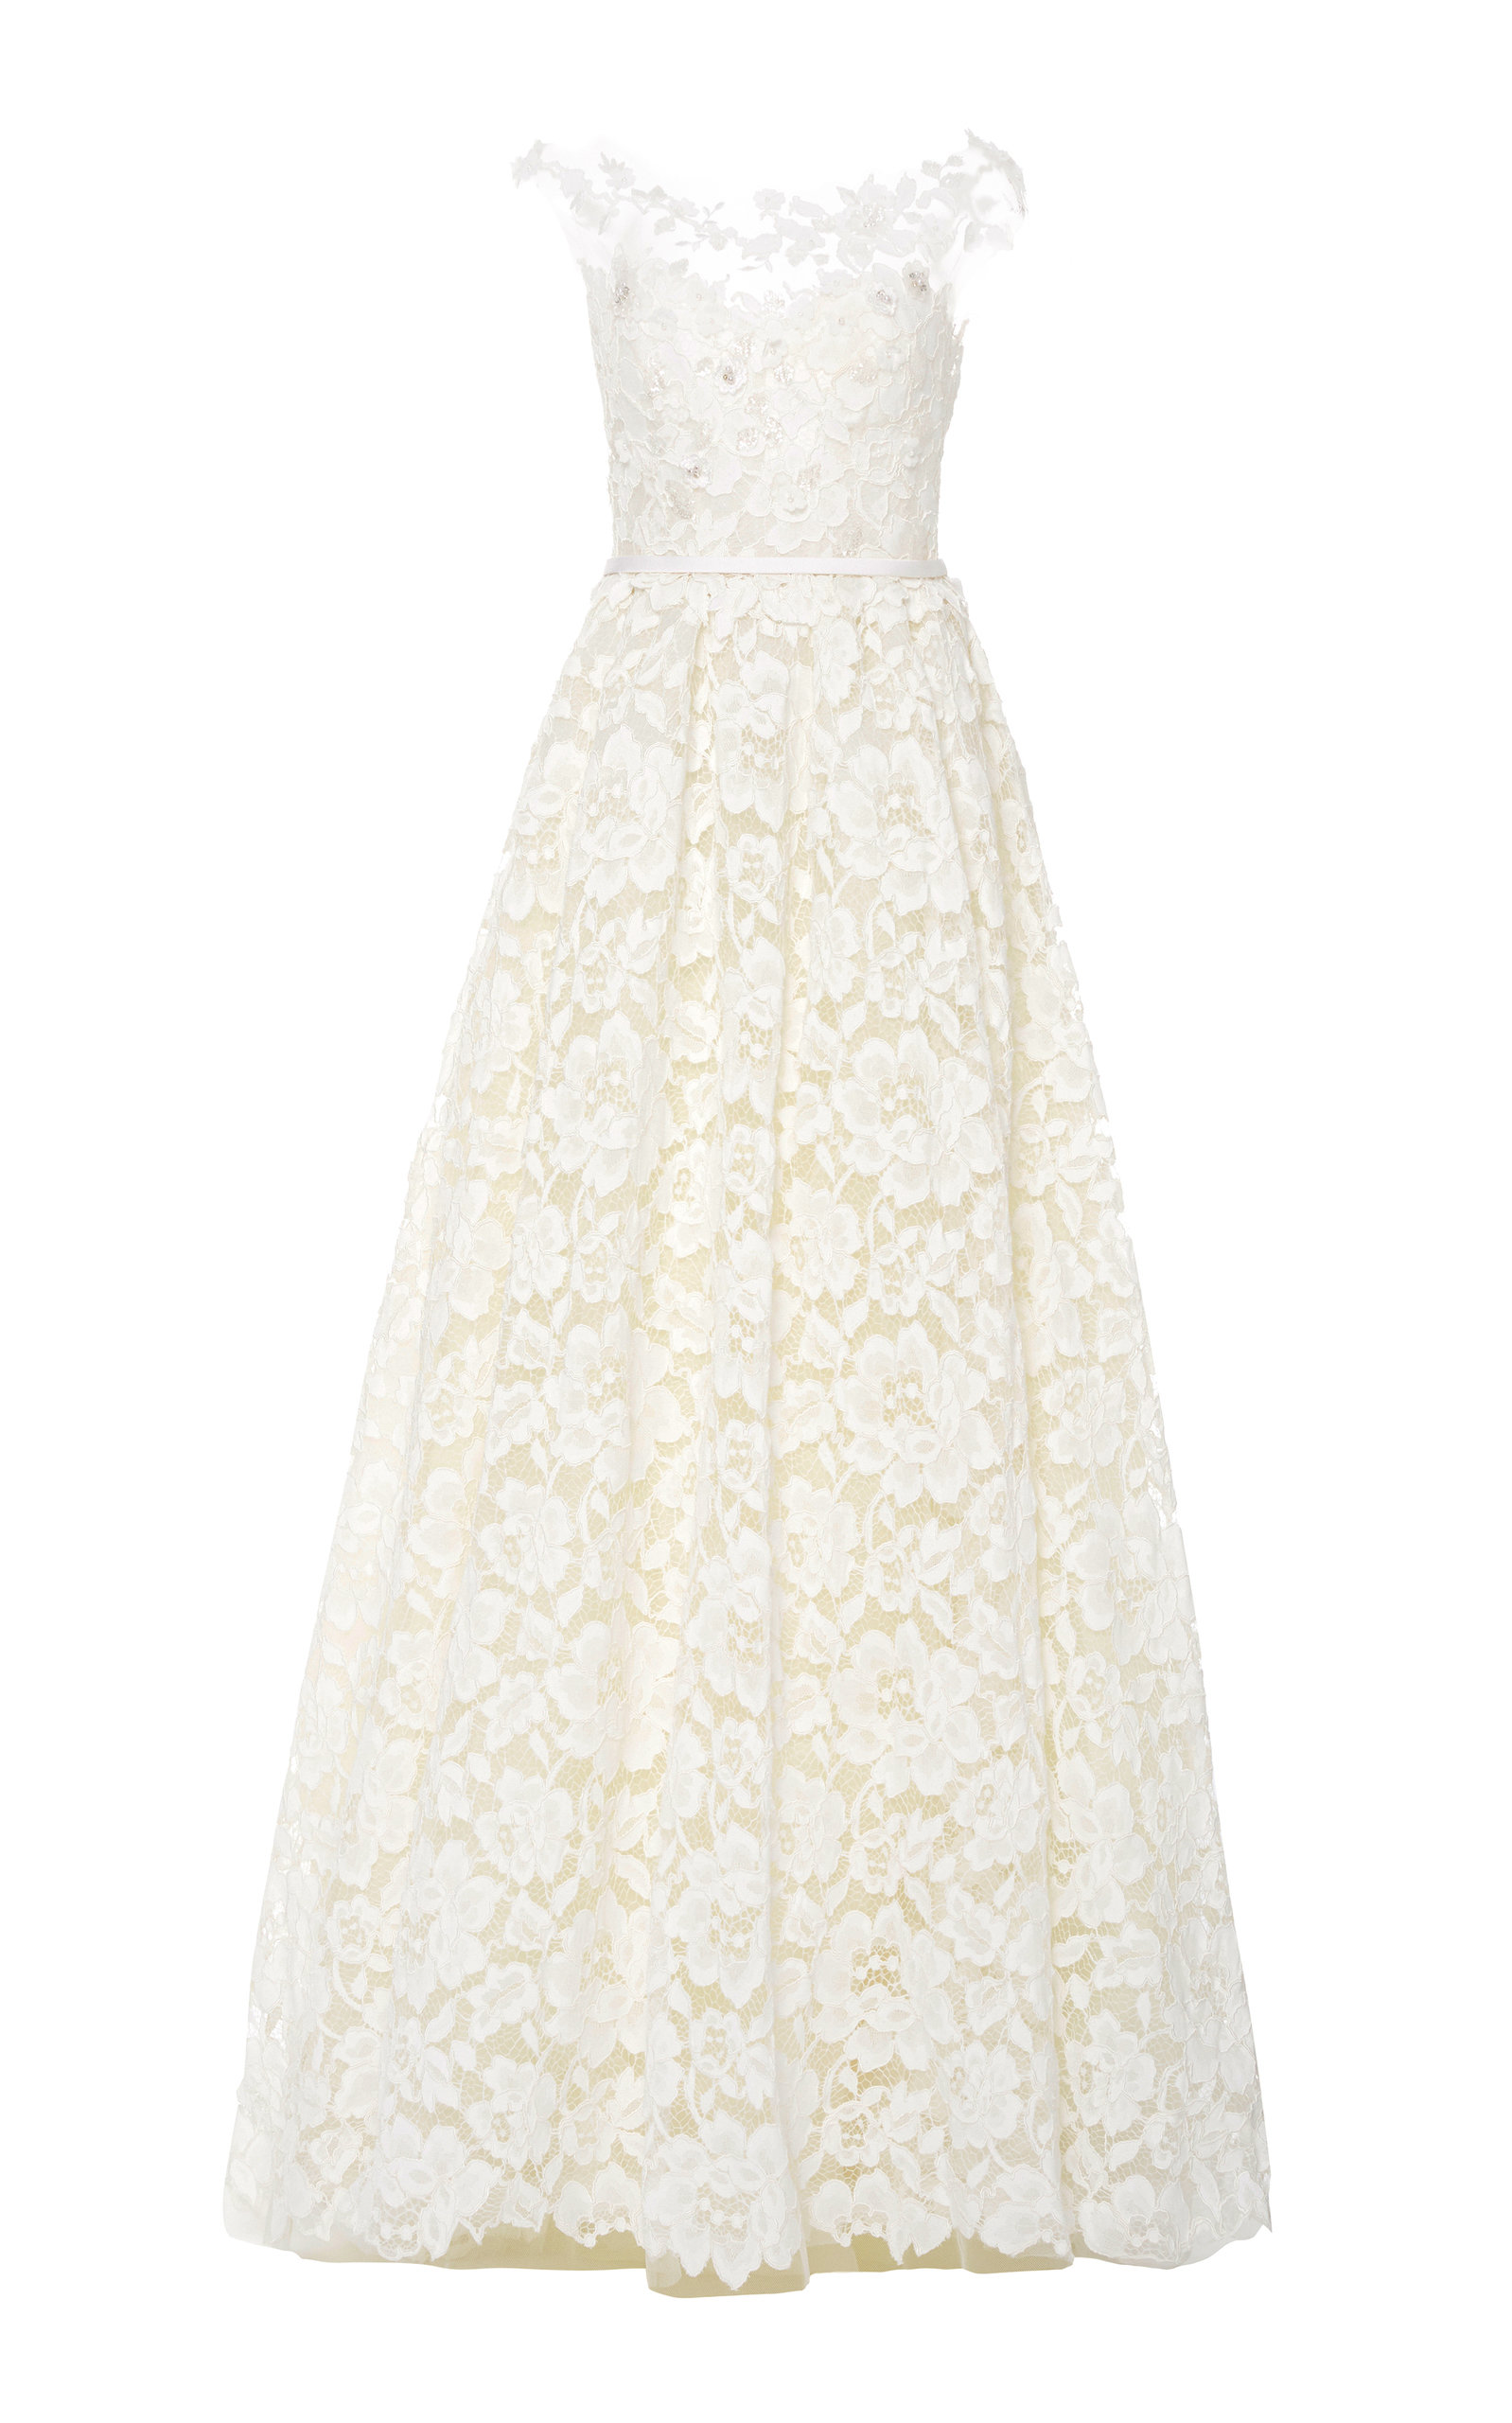 MIRA ZWILLINGER Emily Floral-Appliquéd Lace Gown in White